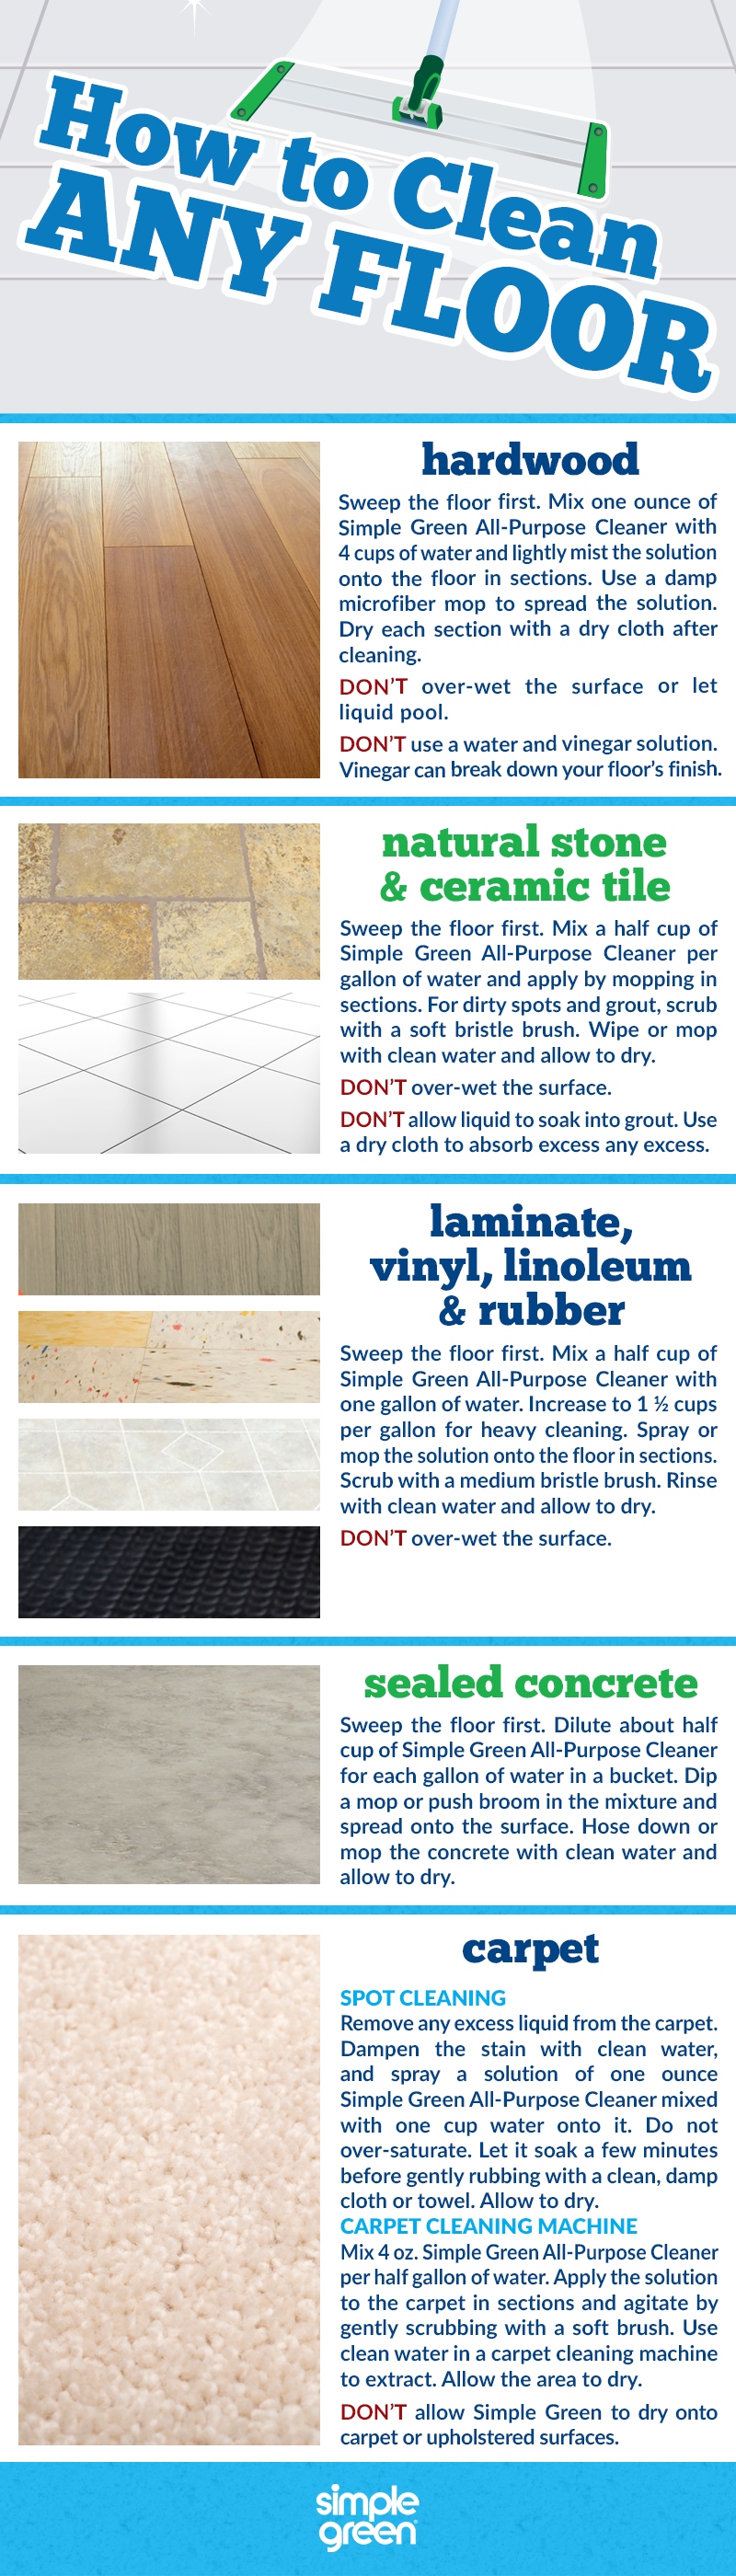 Clean Hardwood Stone Tile Concrete Or Even Linoleum Floors And Carpet With Just One Cleaner Simple Green Cleaning Household Cleaning Hacks Floor Cleaner